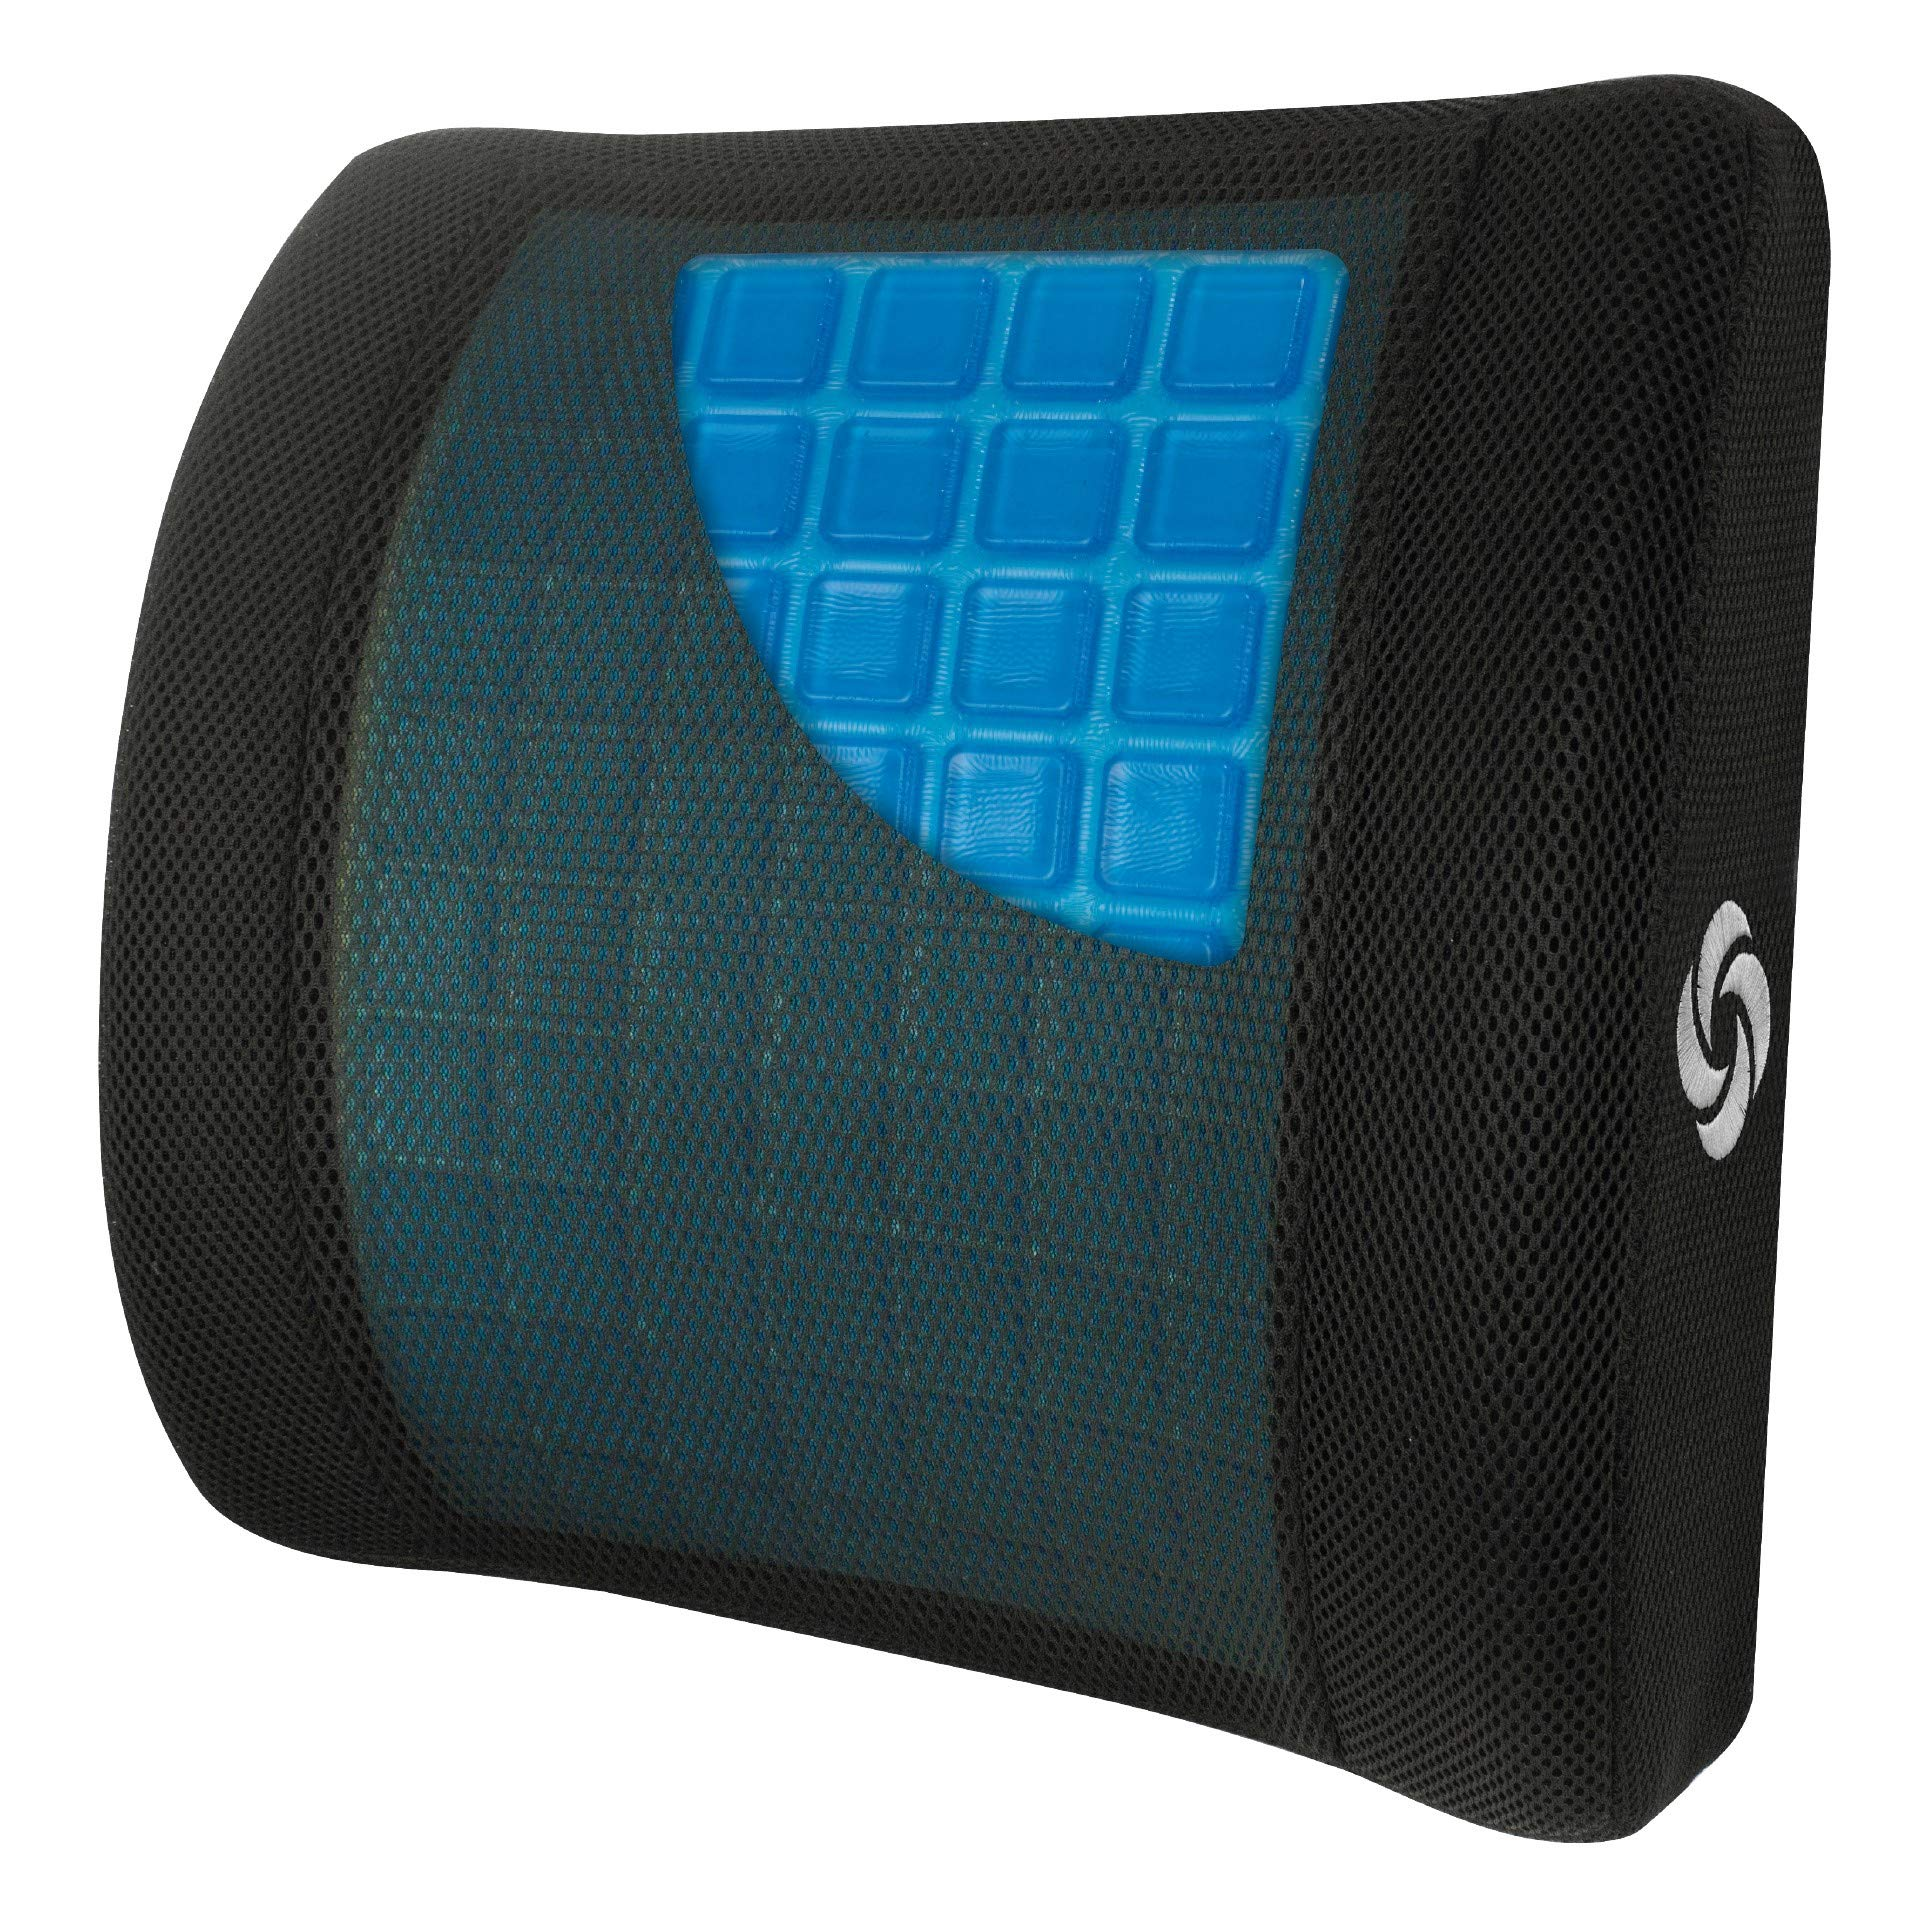 Samsonite SA6086 - Lumbar Support Pillow with Mild Cooling Gel [Cooling effect is subjective, and varies by personal sensitivity] - Helps Relieve Lower Back Pain - Premium Memory Foam by Samsonite (Image #2)